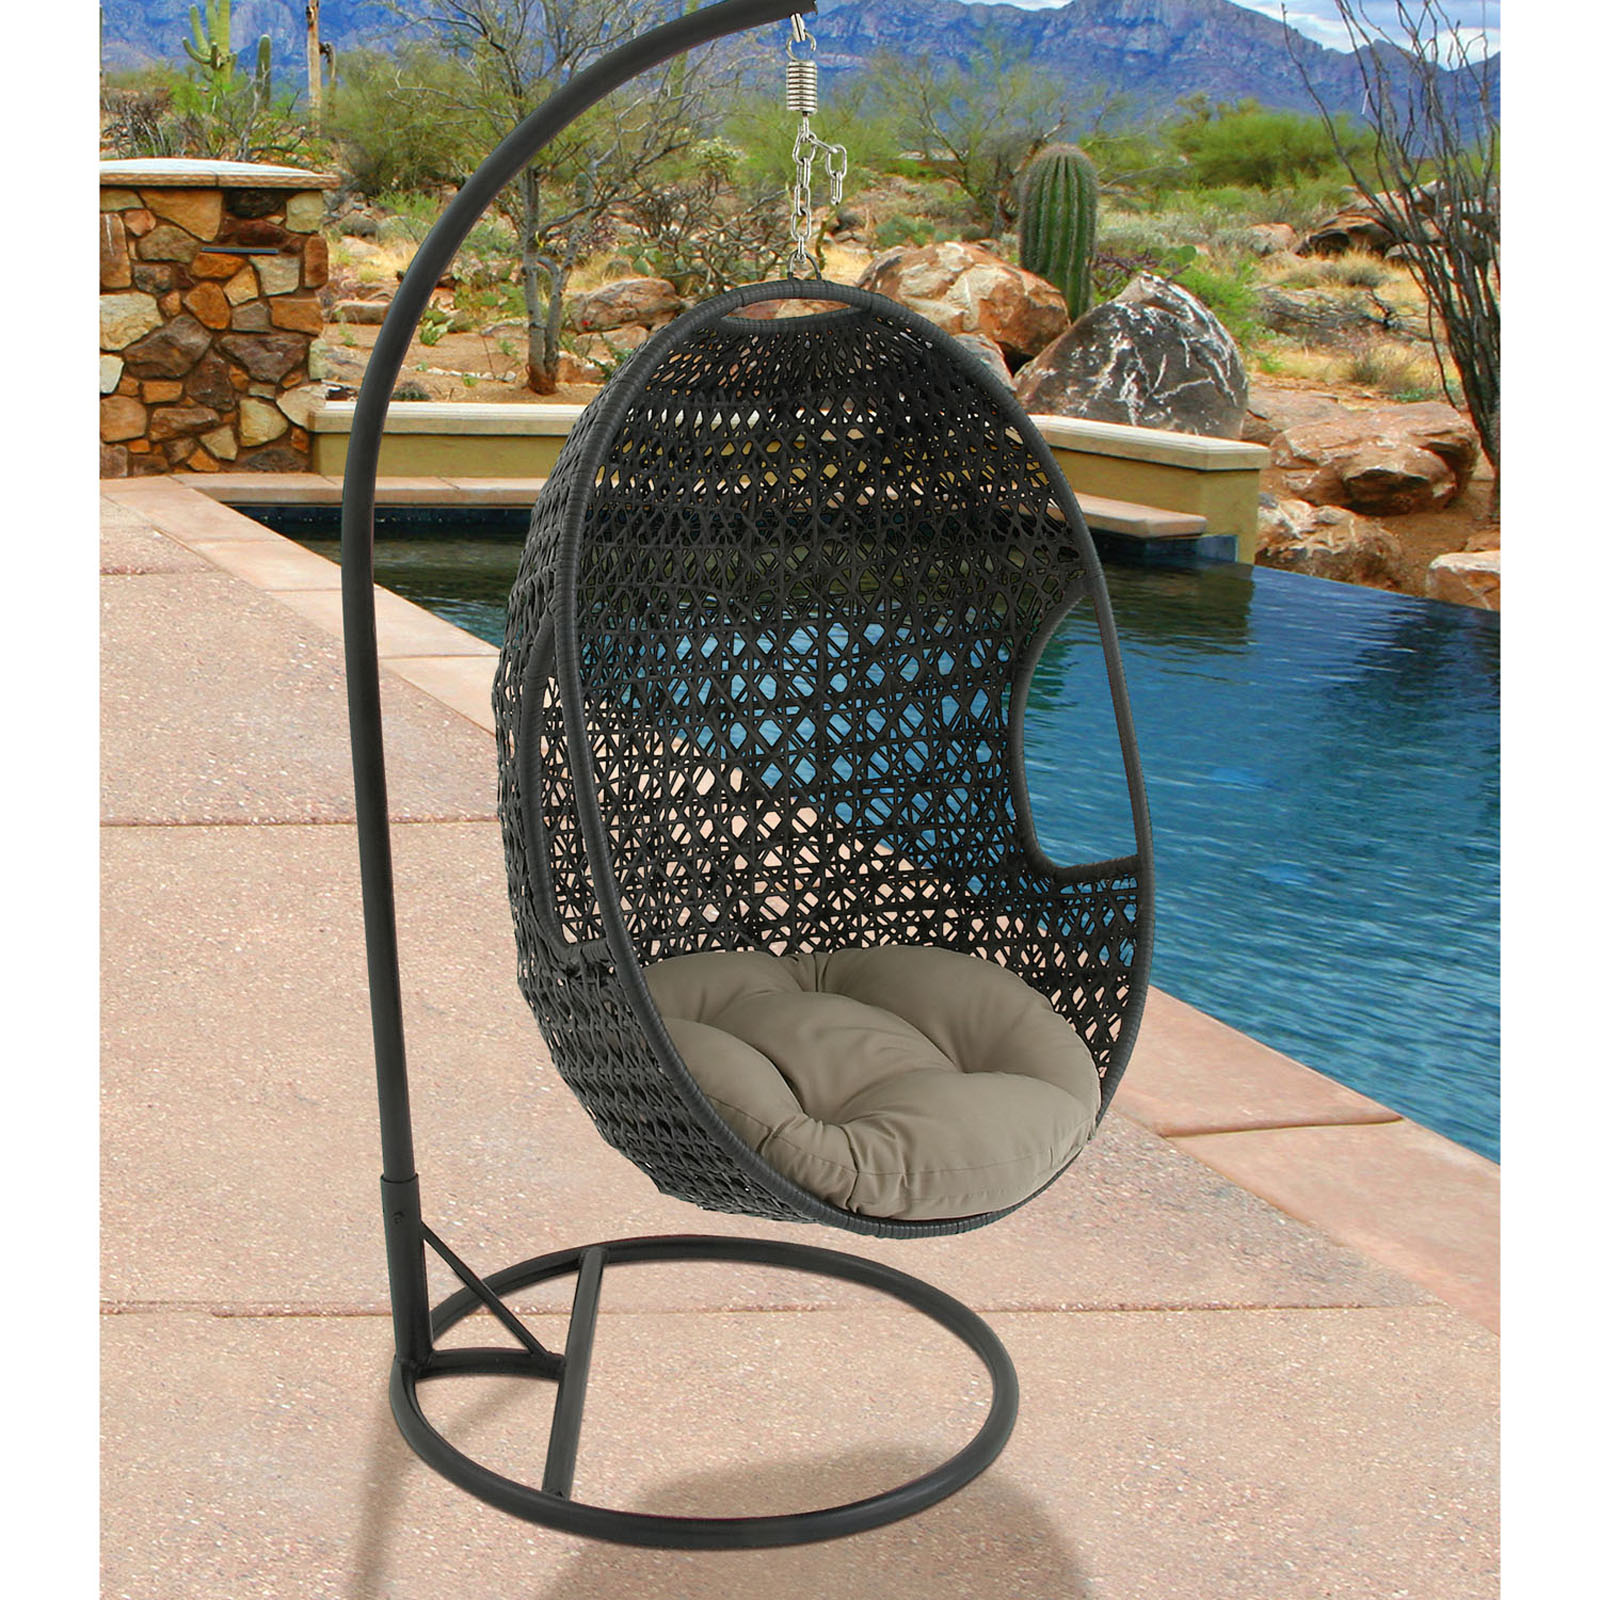 Pod Swing Chair Hanover Hanging Wicker Pod Swing With Seat Cushion